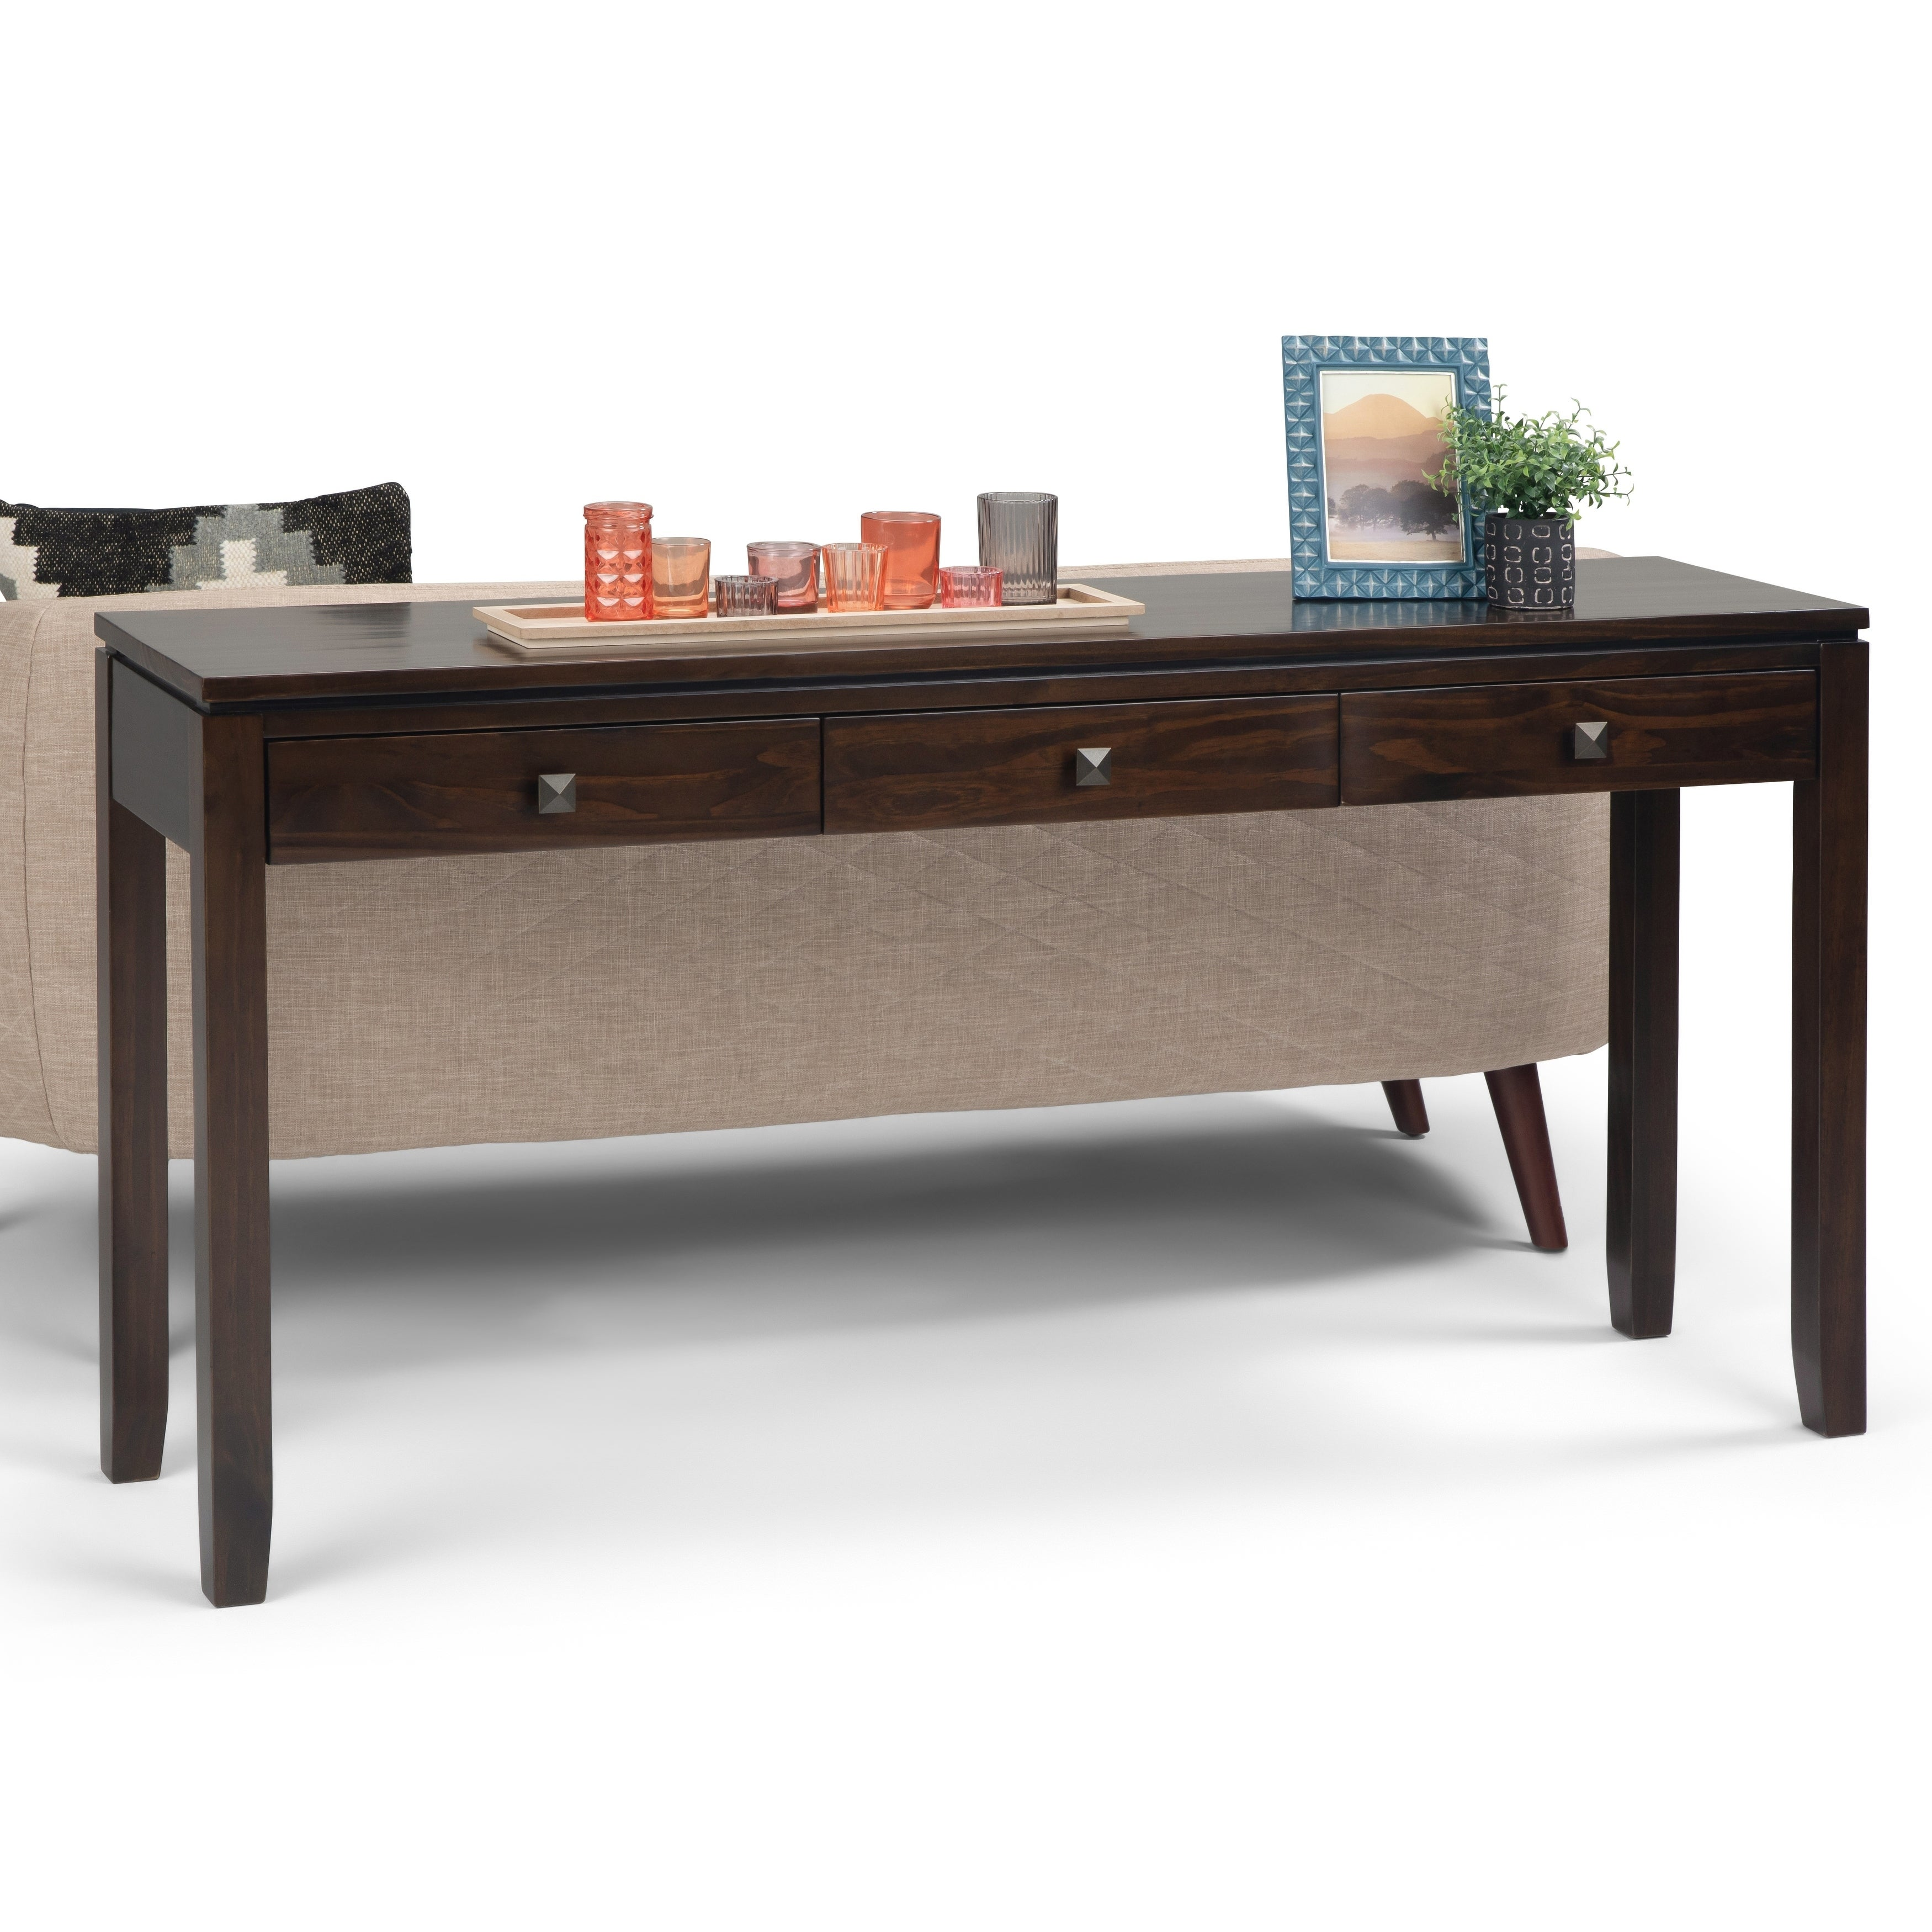 Wyndenhall Essex Solid Wood 60 In Contemporary Wide Console Sofa Table 60 X 15 X 29 5